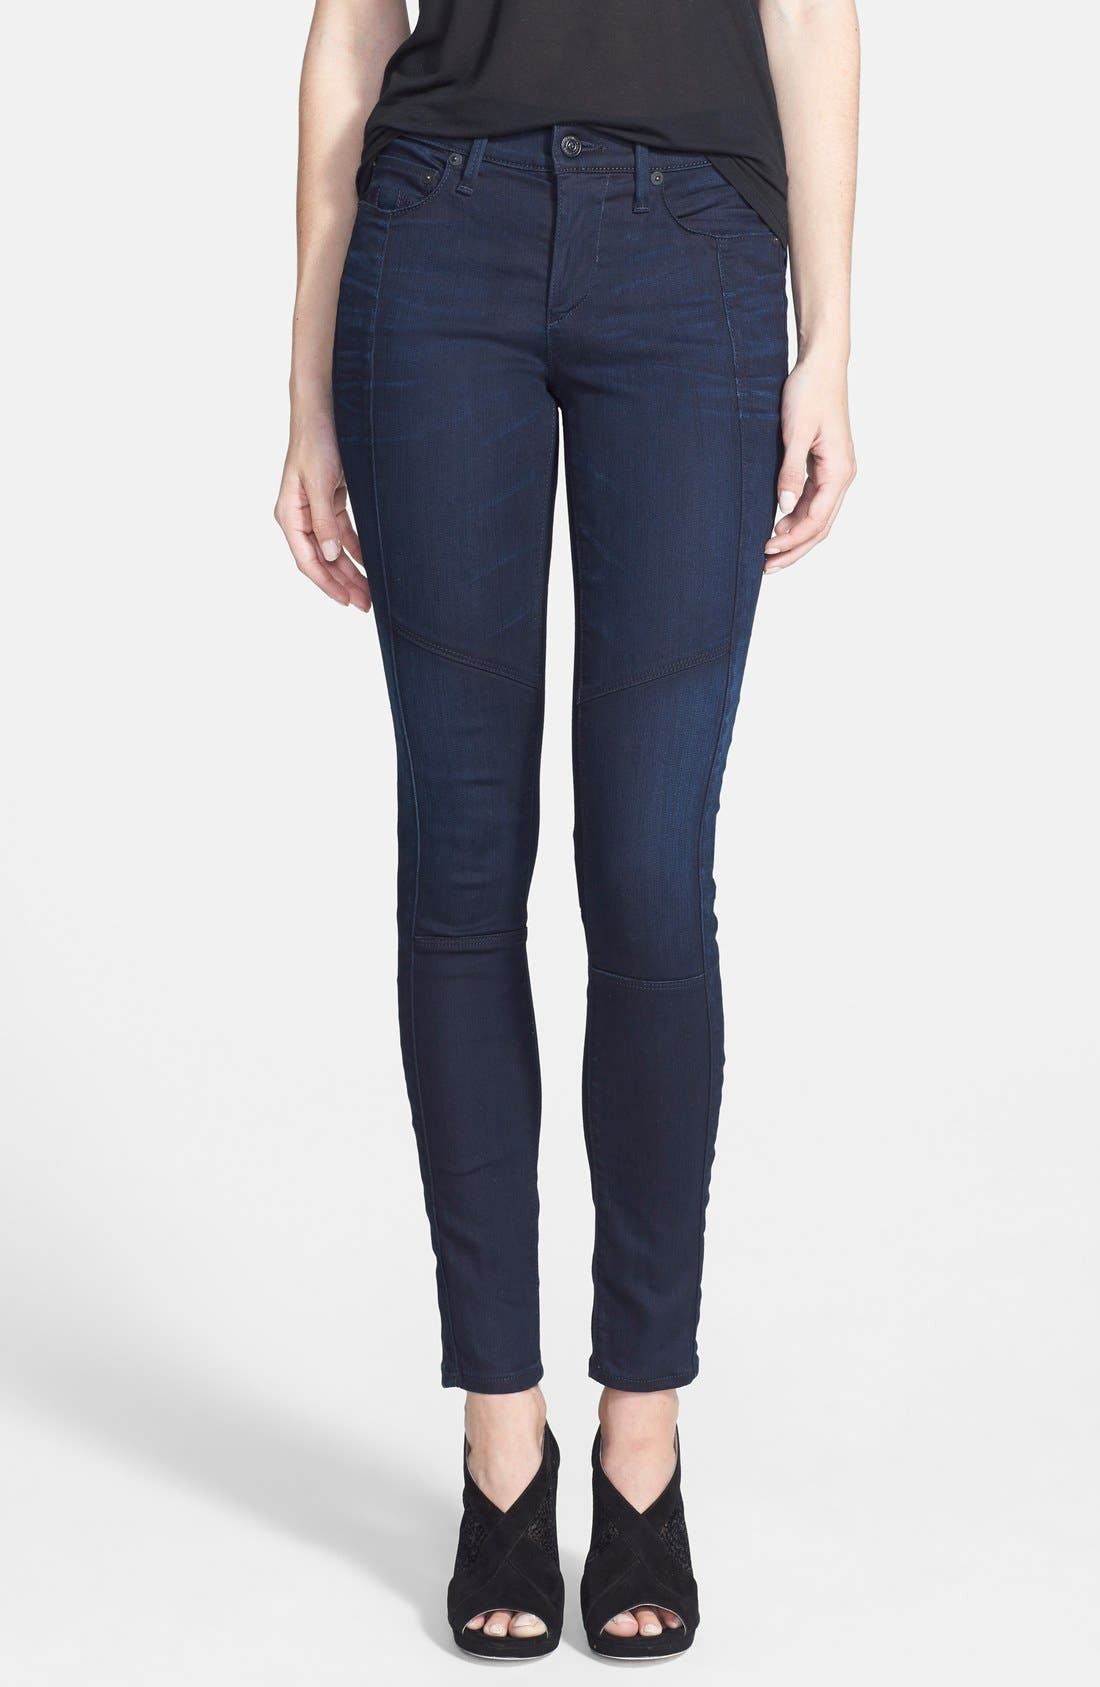 Main Image - True Religion Brand Jeans 'Halle' Moto Jeans (Painful Love)